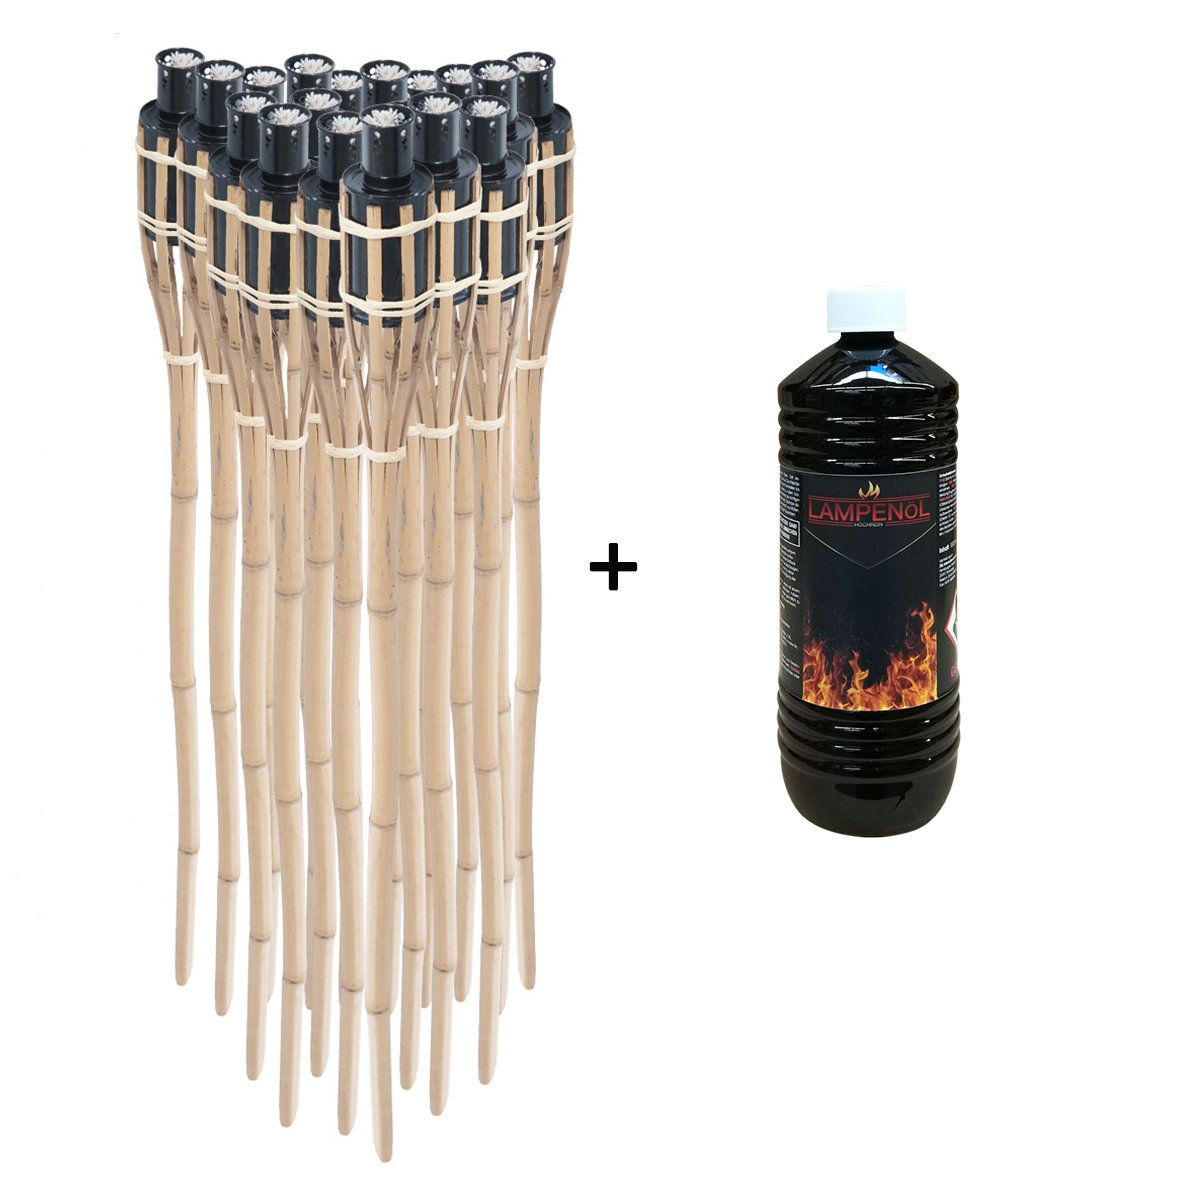 DXP 18 x Natural Handmade Bamboo Garden Tiki Torches with 1L Lamp and Torch Oil - Oil Burning - 3Ft / 90CM - Resuable Oil Lantern